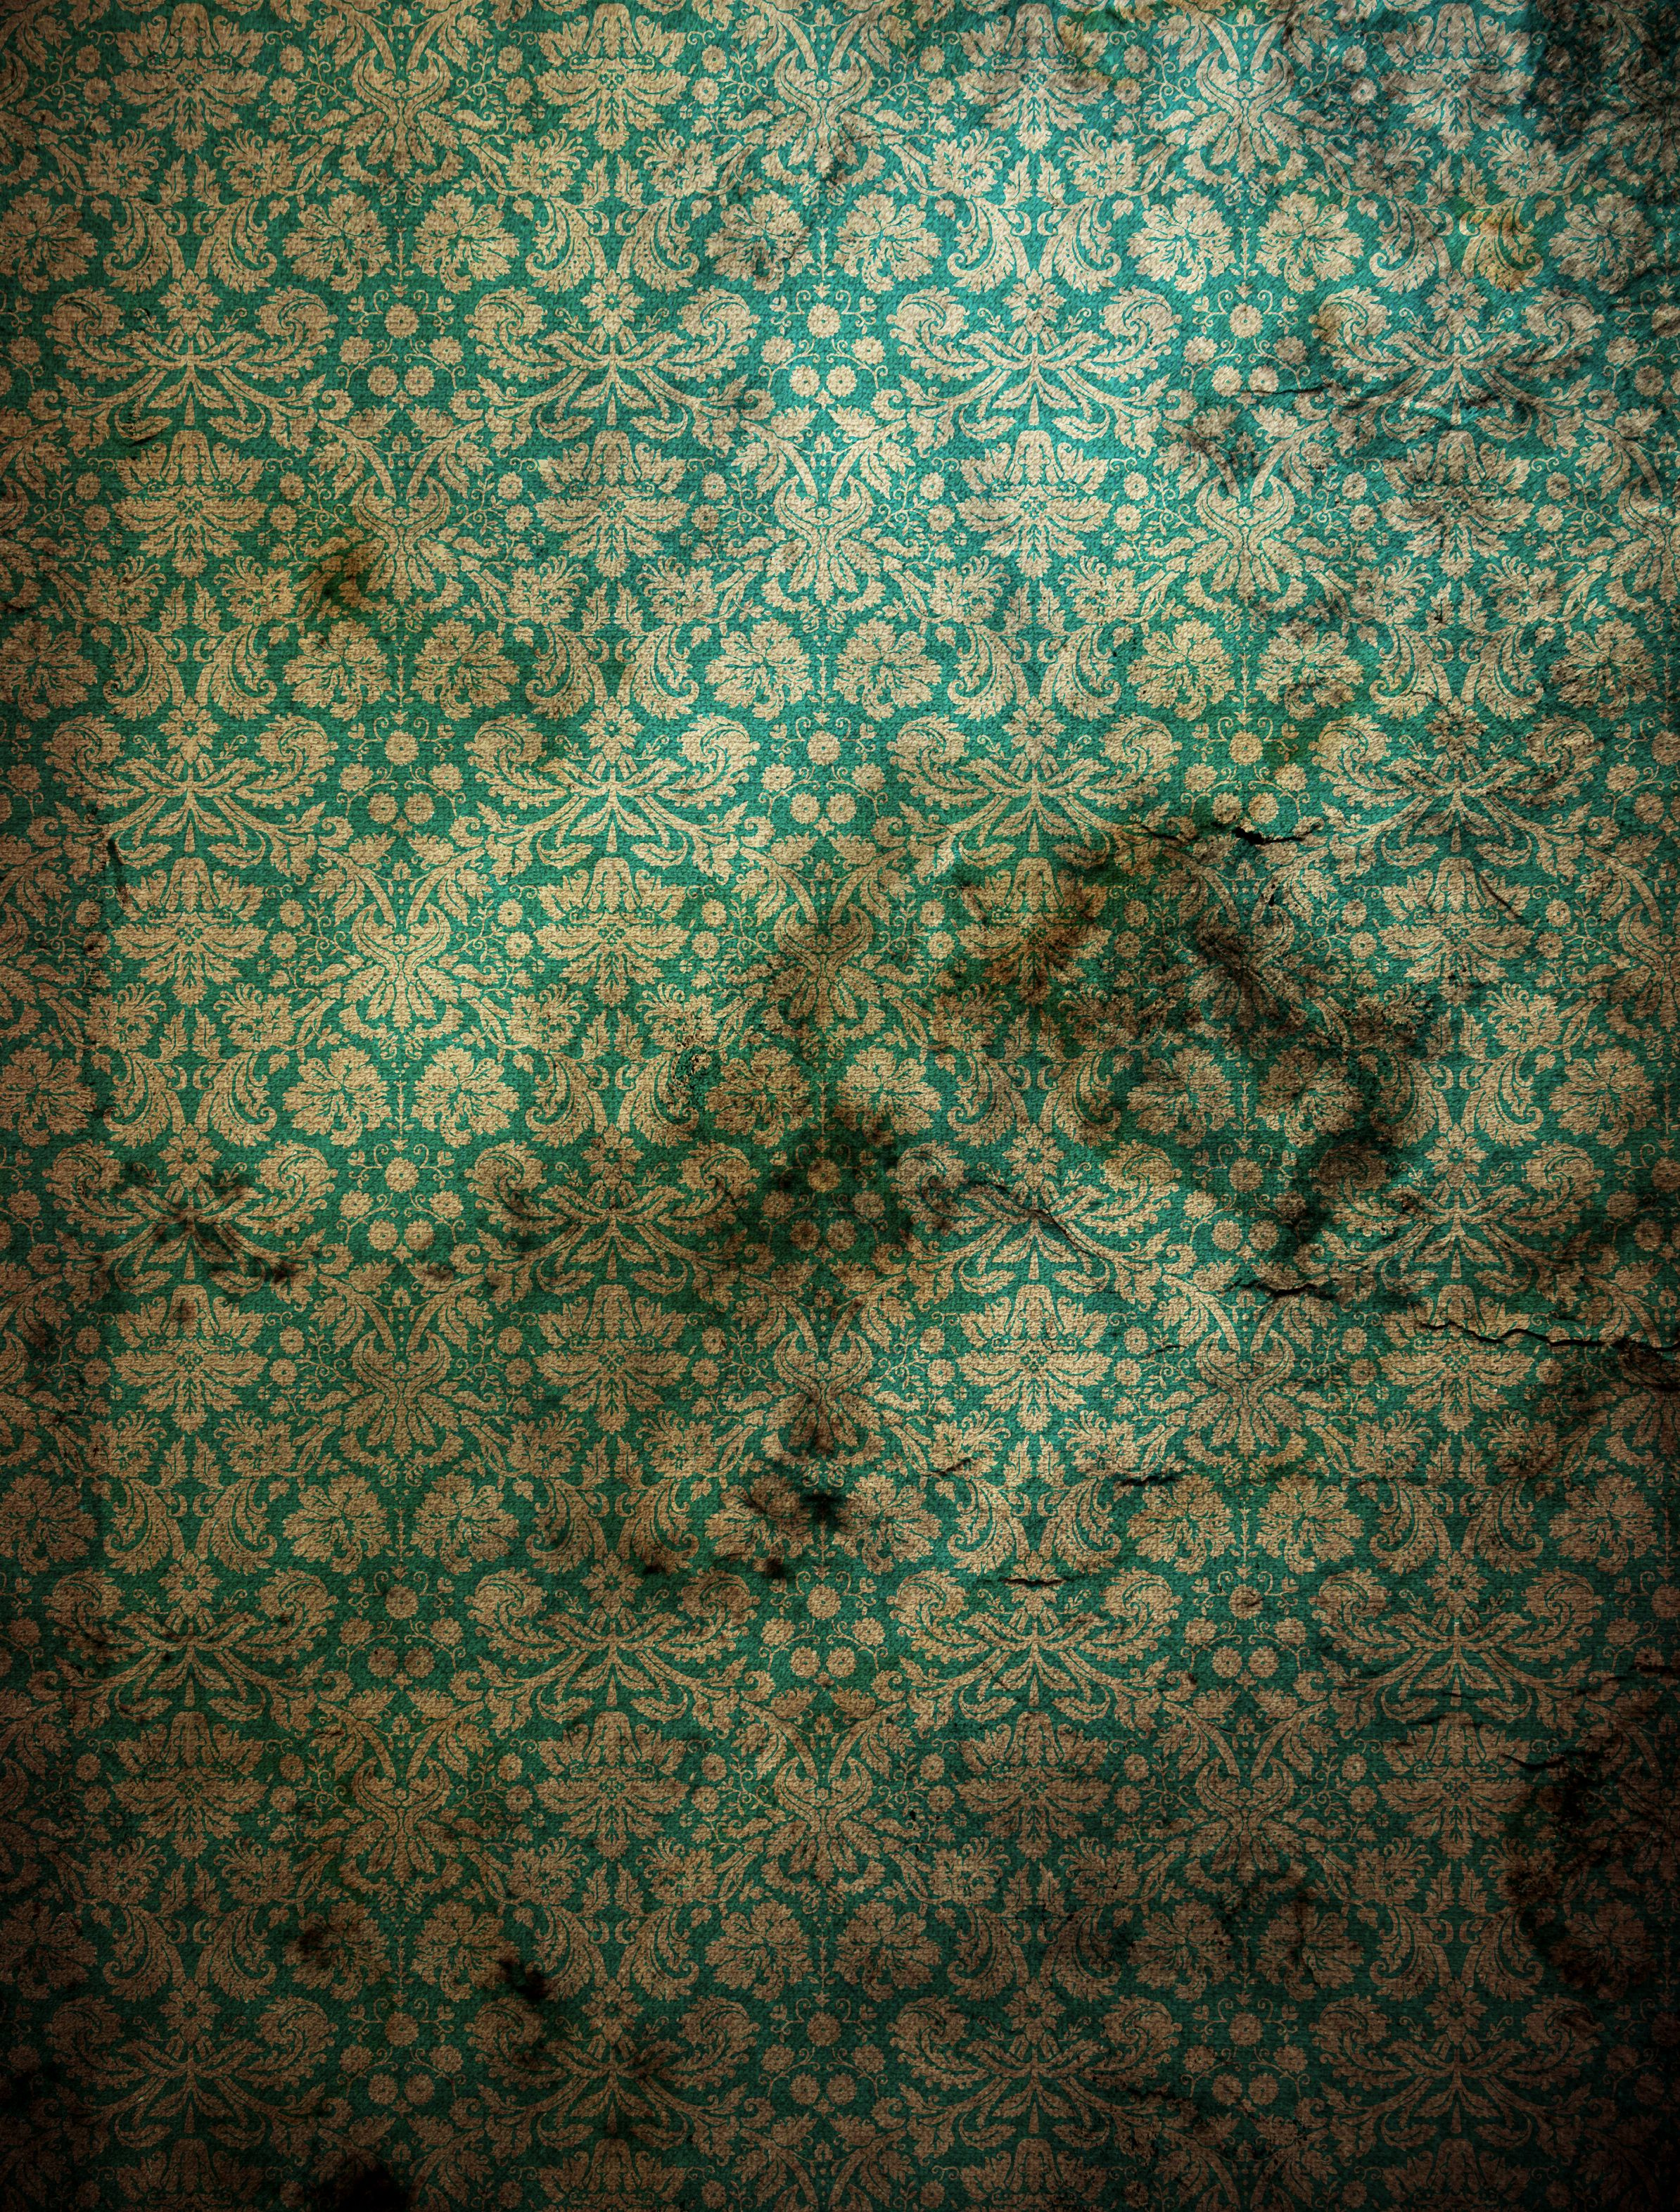 Free High Resolution Textures Gallery Vintage Wallpaper 5 Wallpapers Vintage Vintage Wallpaper Textured Wallpaper